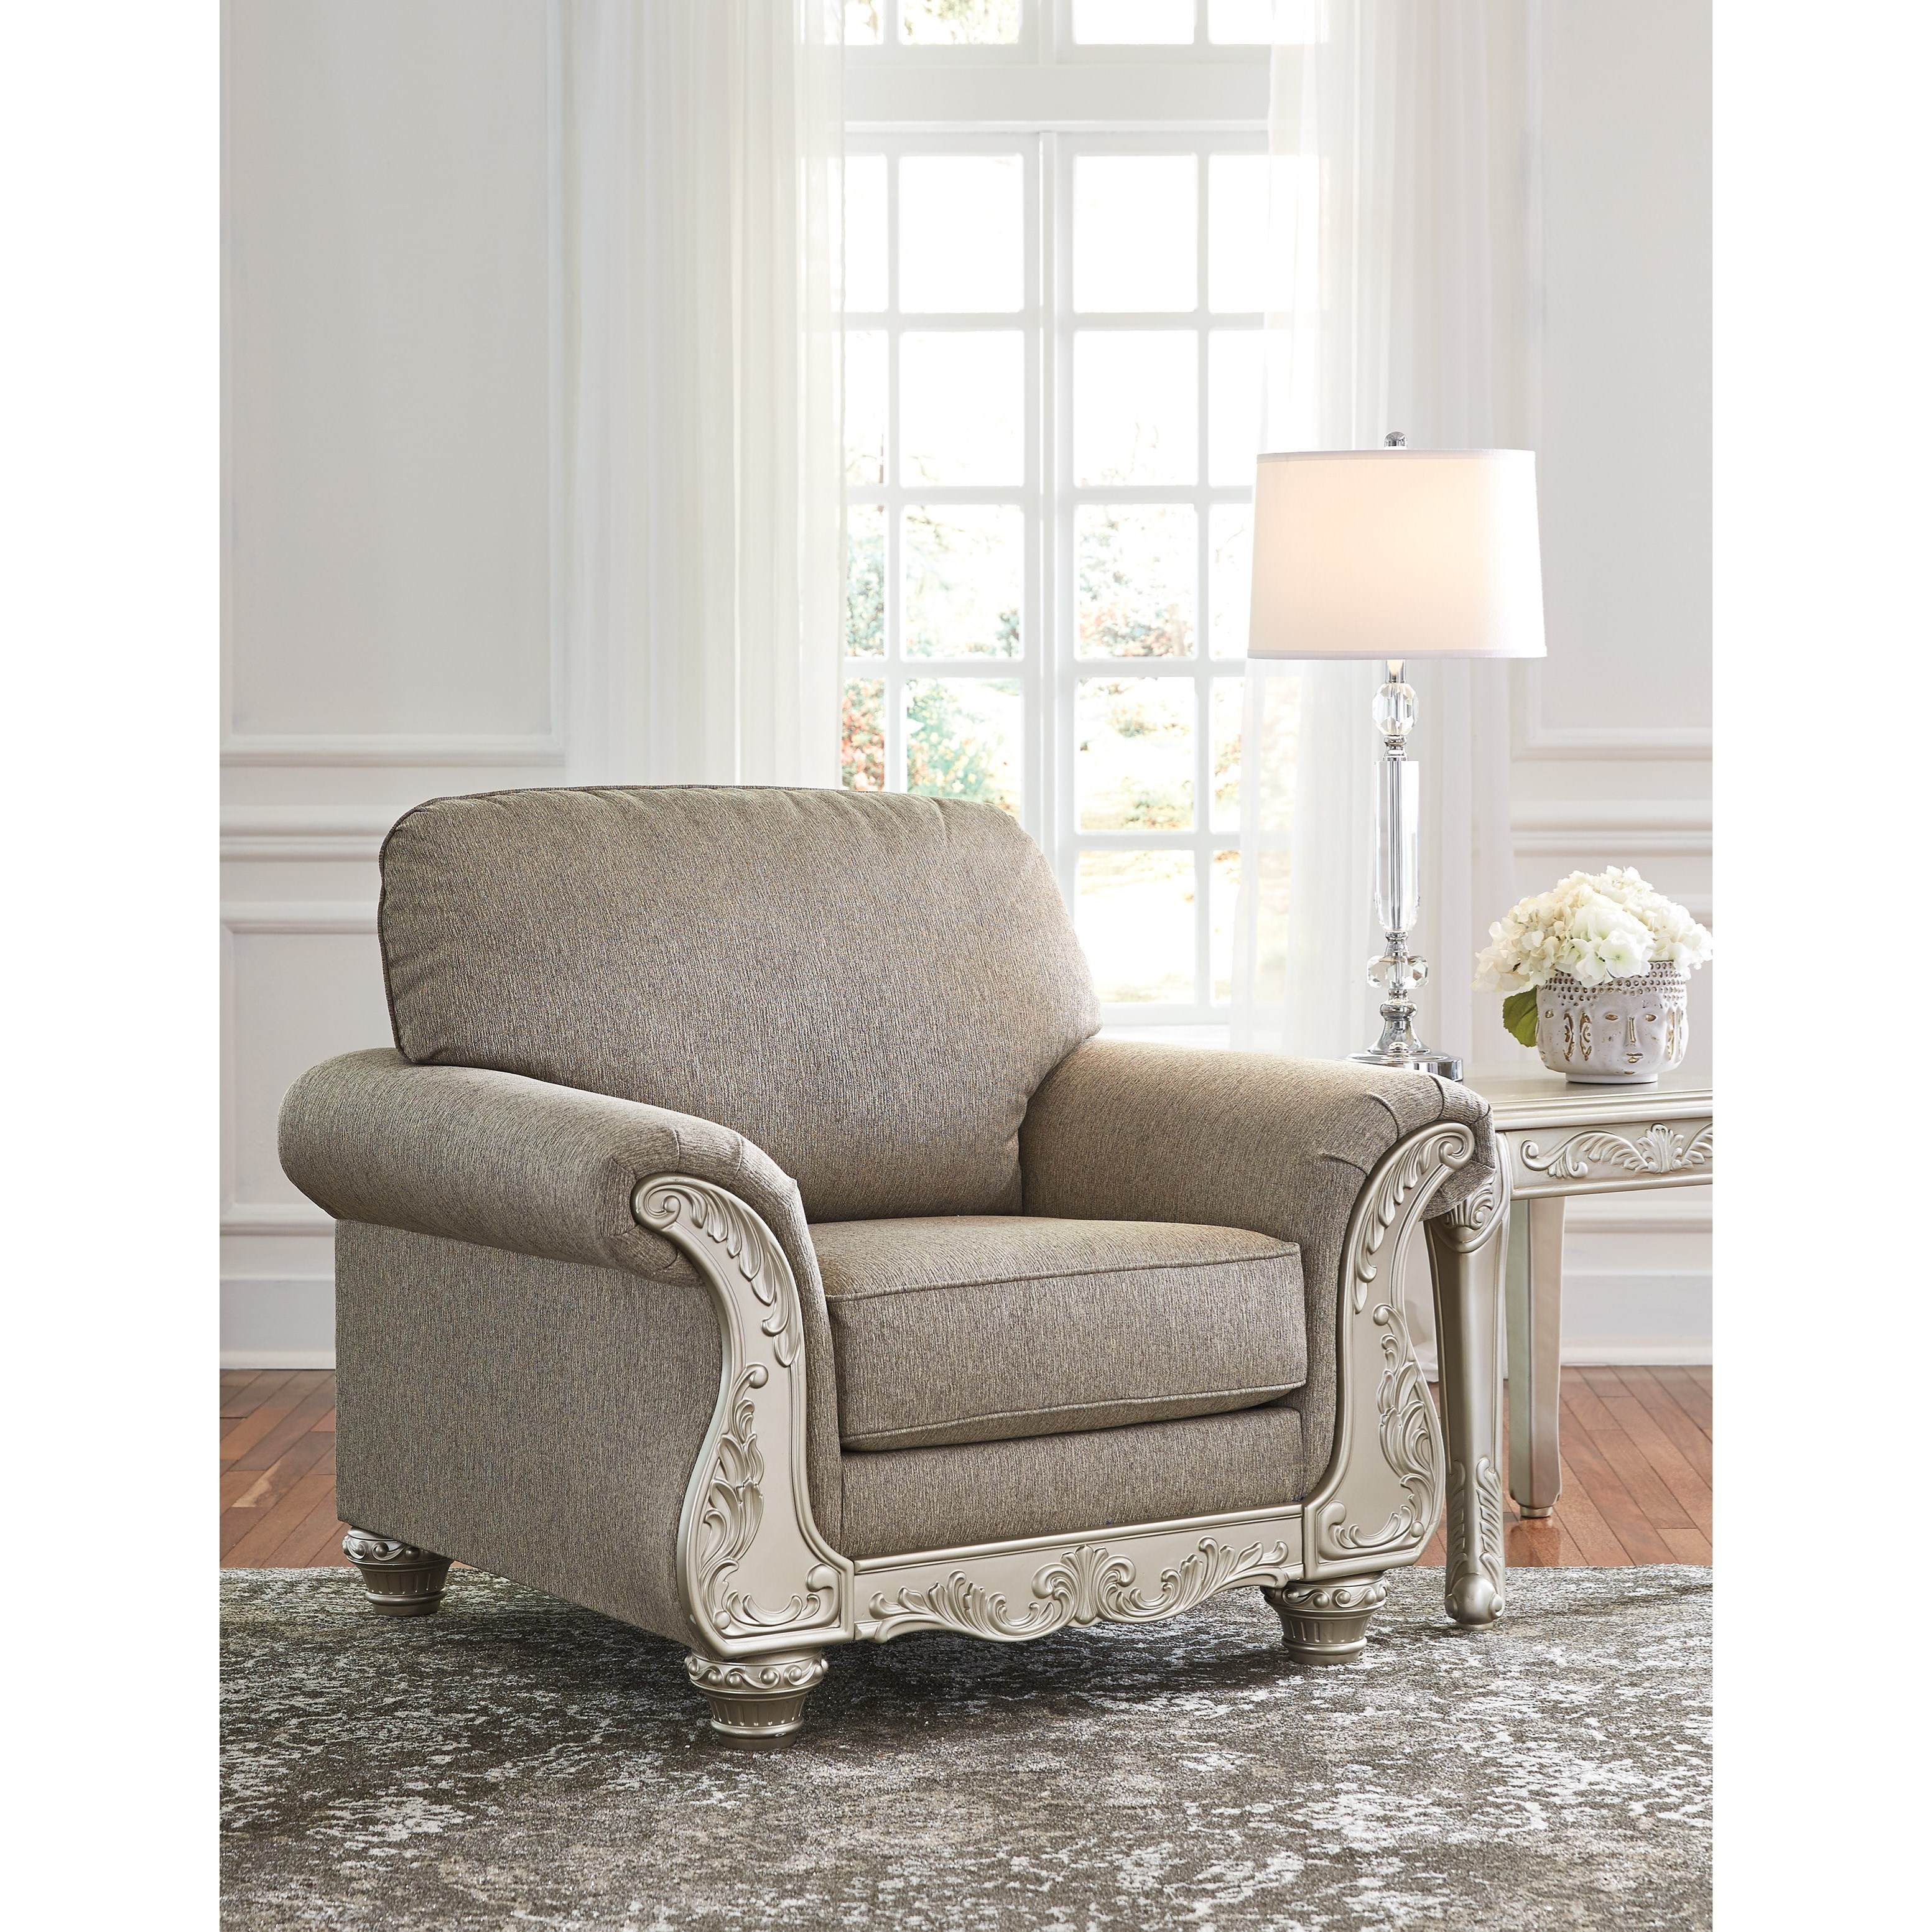 Ashley Furniture Online Catalog: Signature Design By Ashley Gailian Chair & Ottoman With